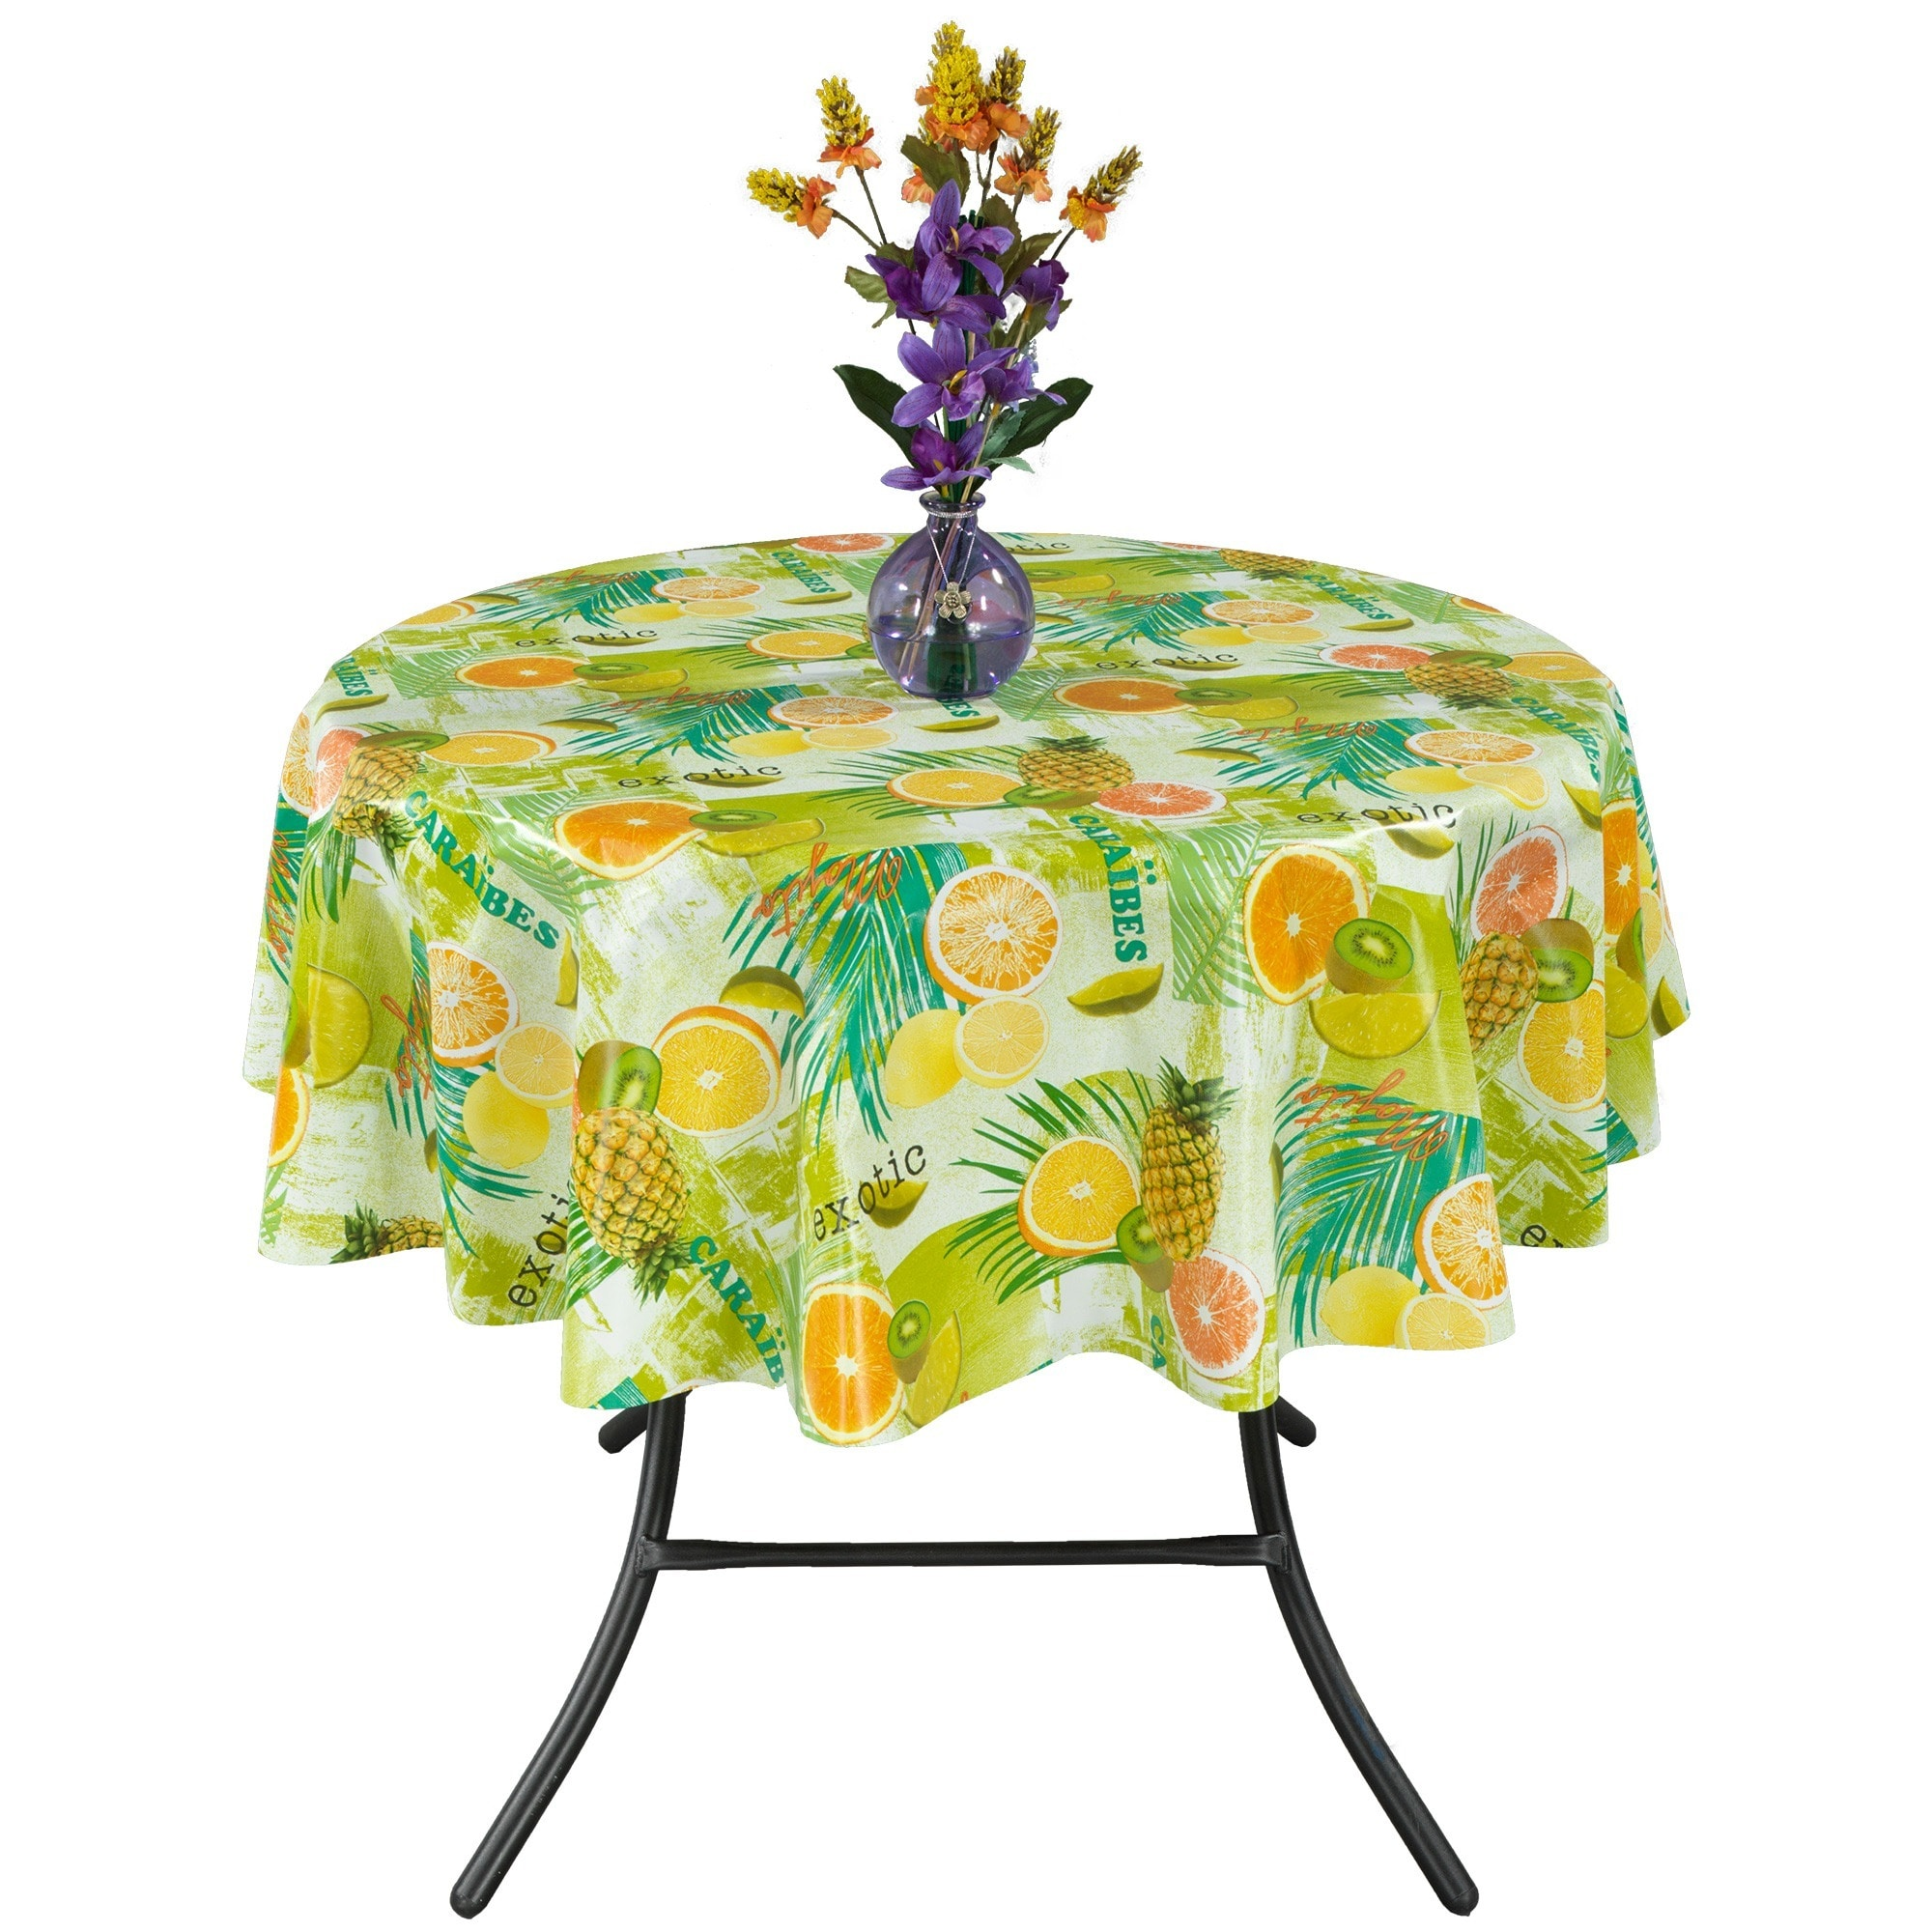 Shop Ottomanson Vinyl Tablecloth Tropical Fruit Design Indoor U0026 Outdoor  Non Woven Backing Tablecloth   On Sale   Free Shipping On Orders Over $45  ...